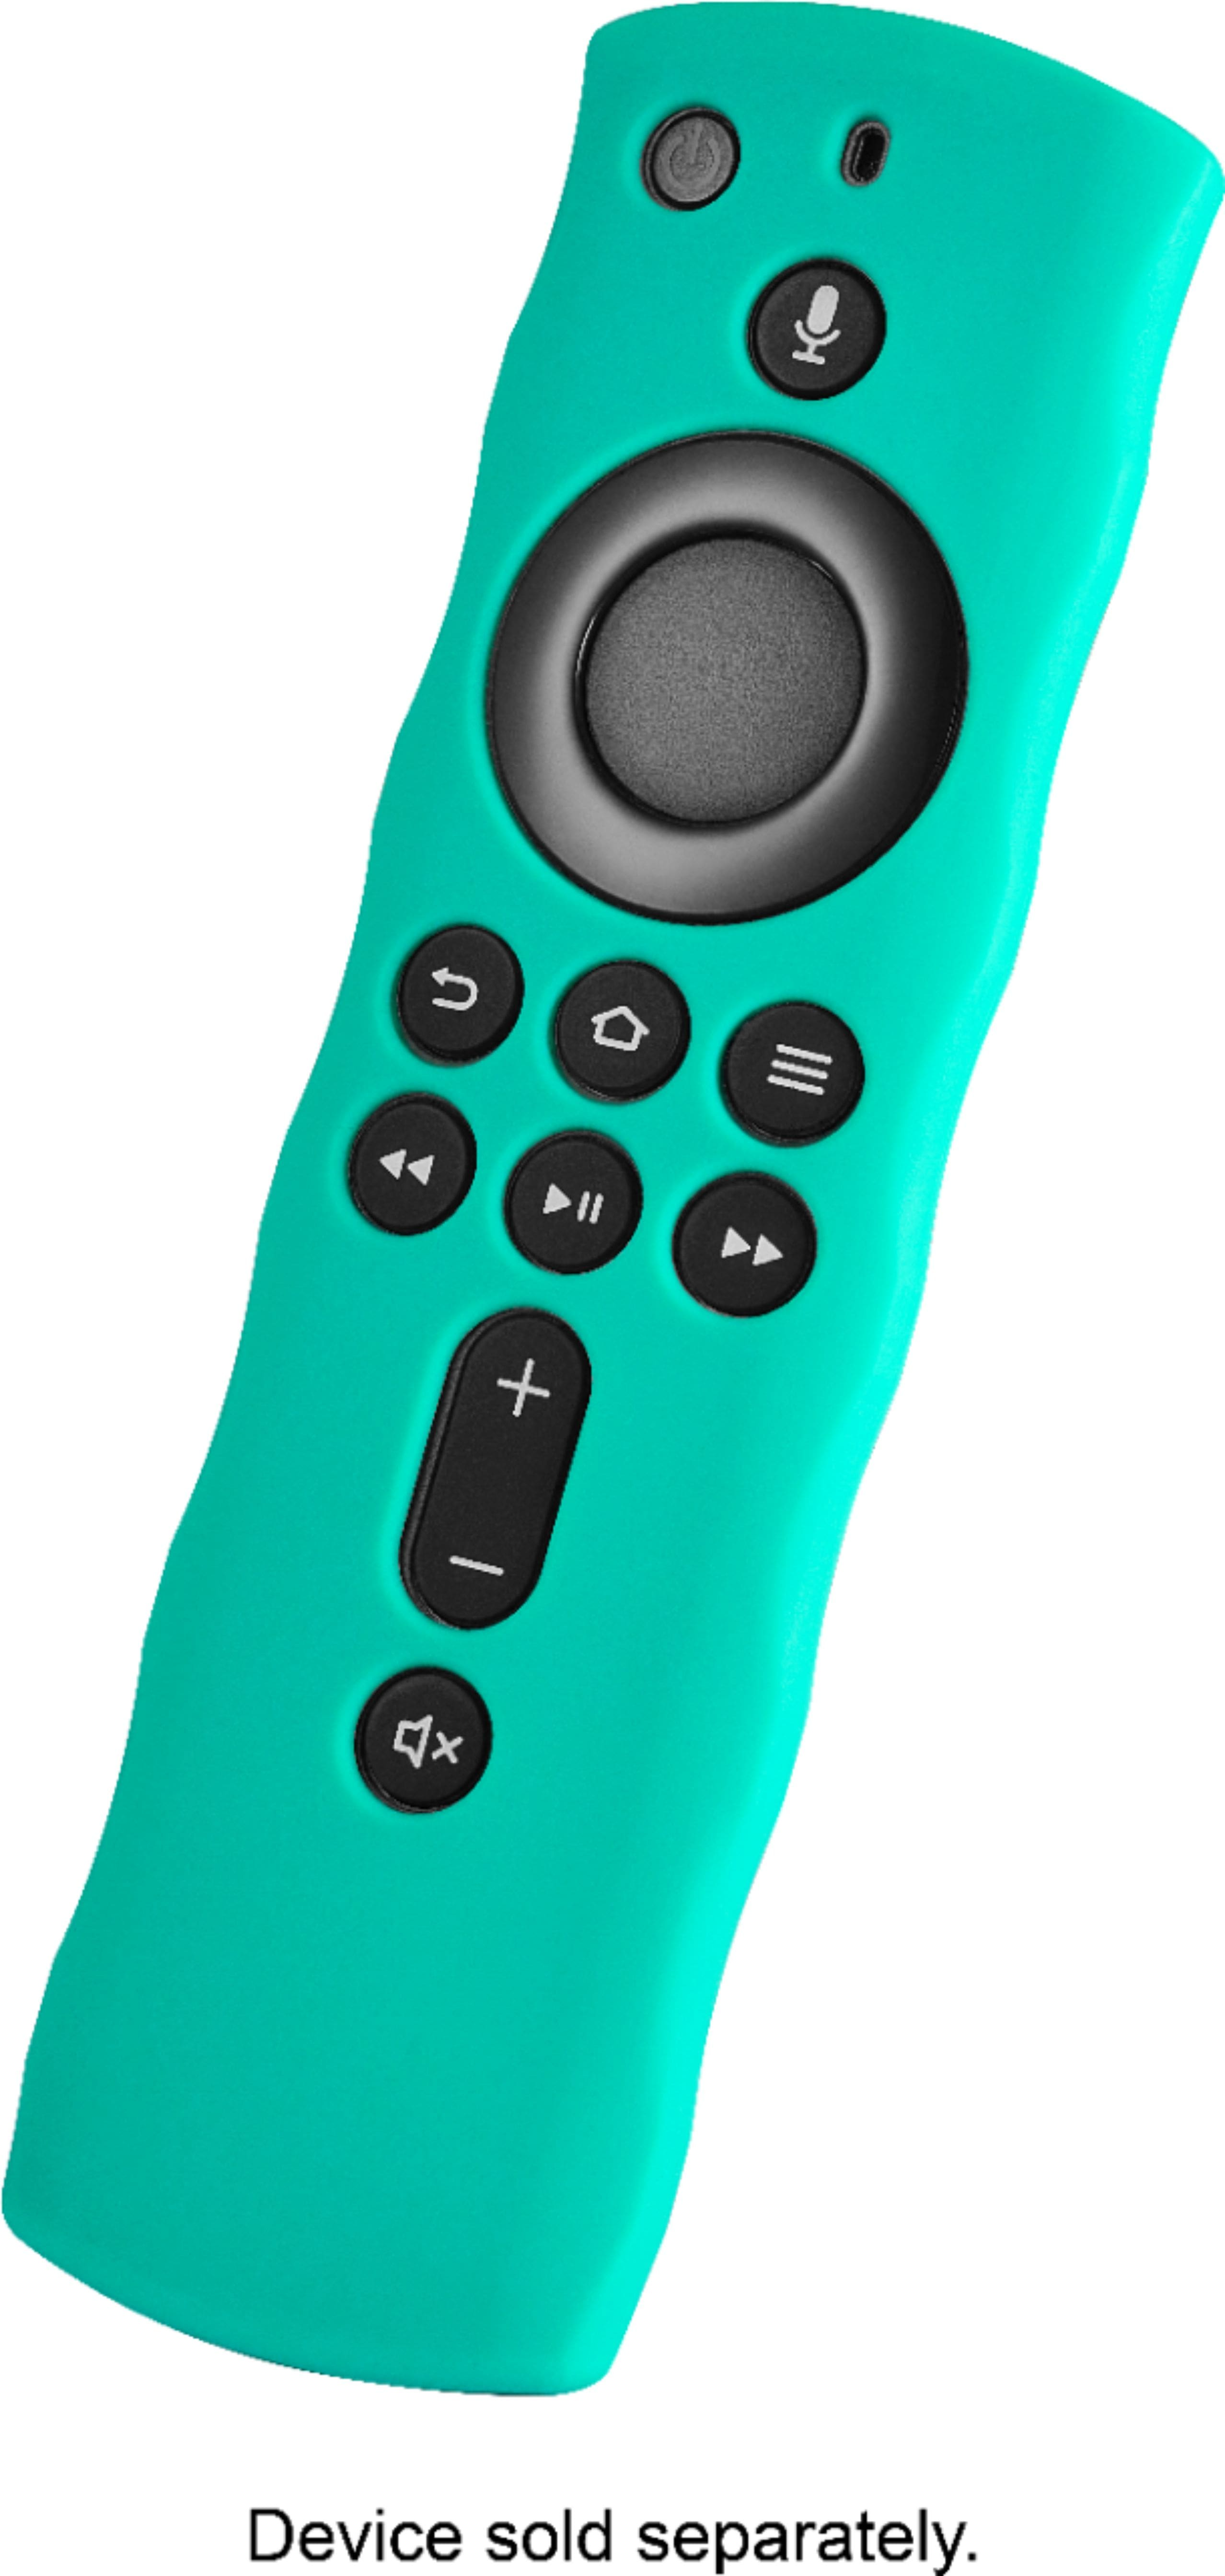 Insignia Fire TV Remote Covers (Teal or Orange) $4.99 @ Best Buy w/ Free Store Pickup